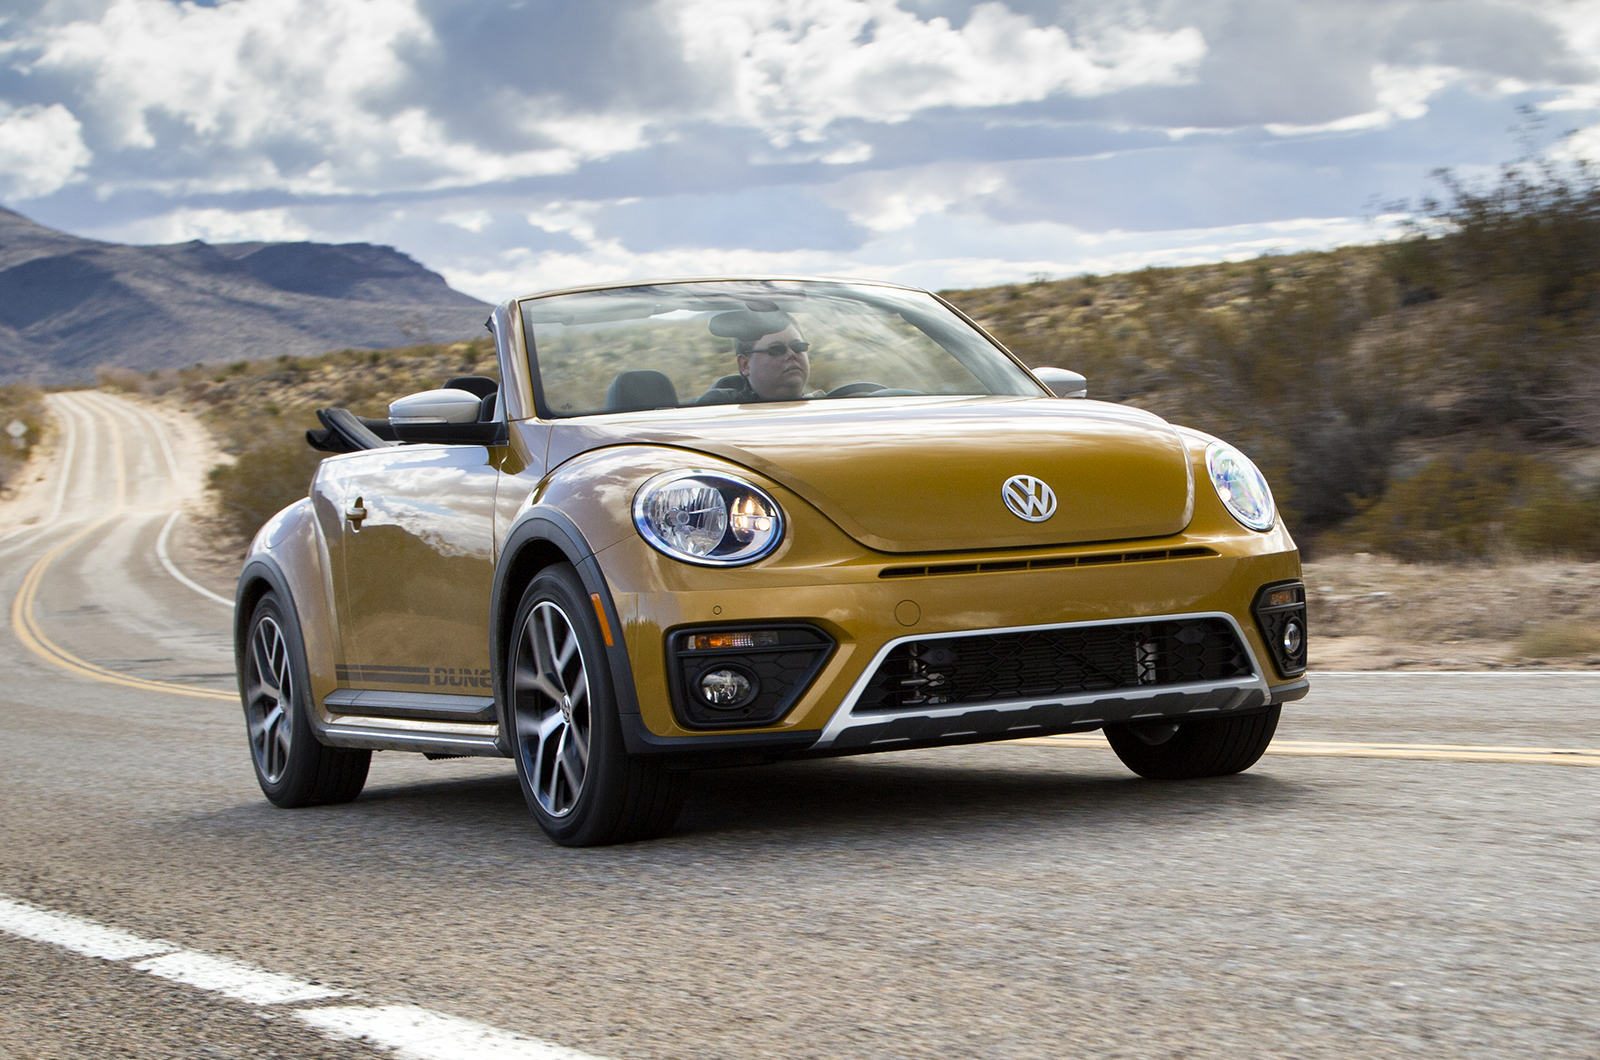 2016 Volkswagen Beetle Dune 1 8 Tsi Cabriolet Prototype Review Review Autocar